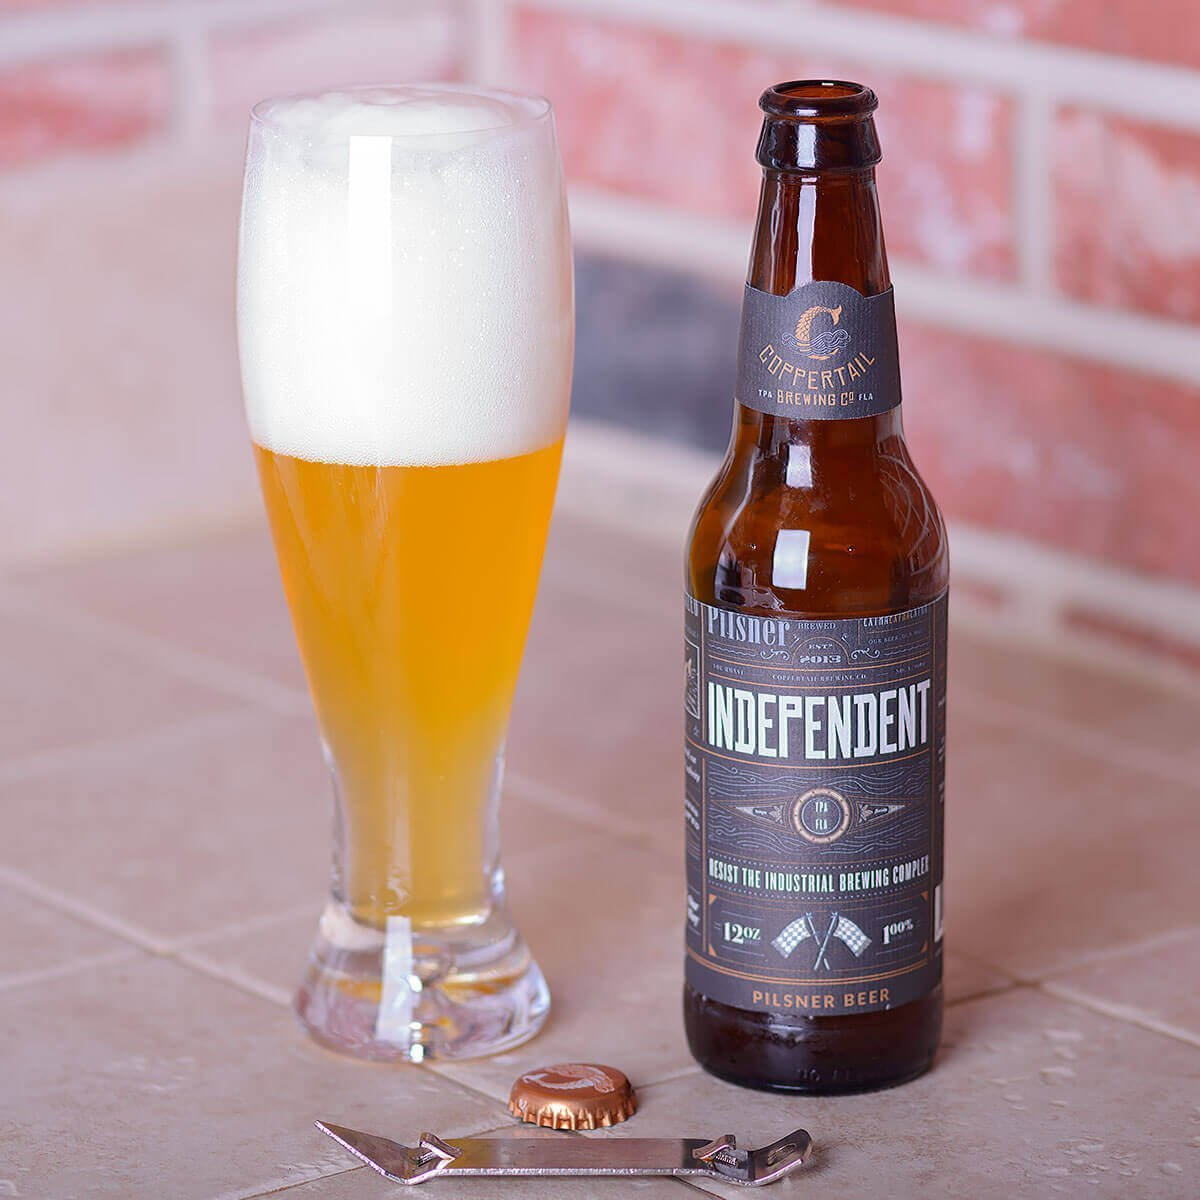 Independent Pilsner is a German-style Pilsner by Coppertail Brewing Co. that balances peppery and floral hops with cracker malt.